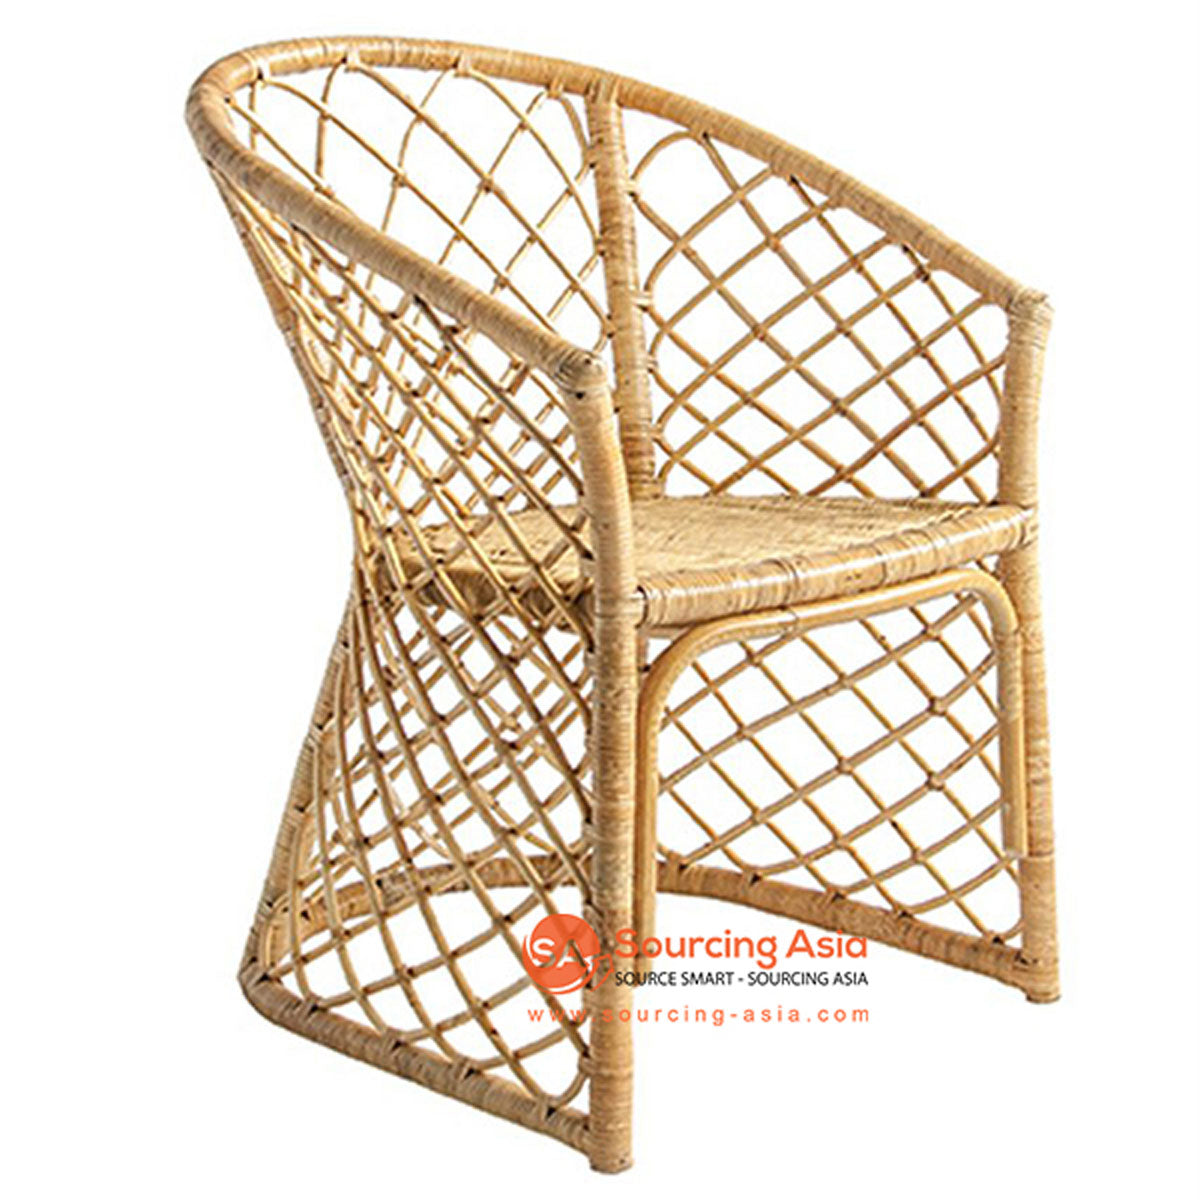 SHL106 - NATURAL UPHOLSTERED DESIGN ARMCHAIR